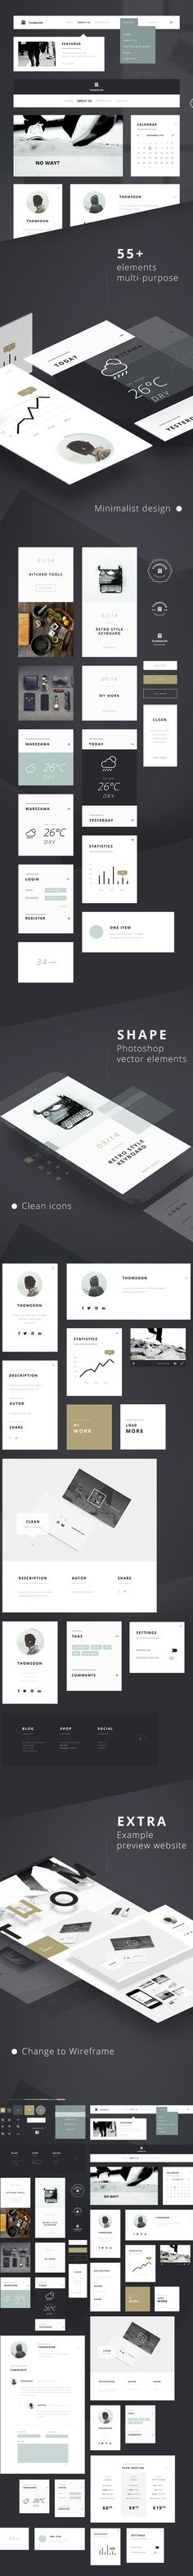 55-free-ui-kit-elements - UI-Kits